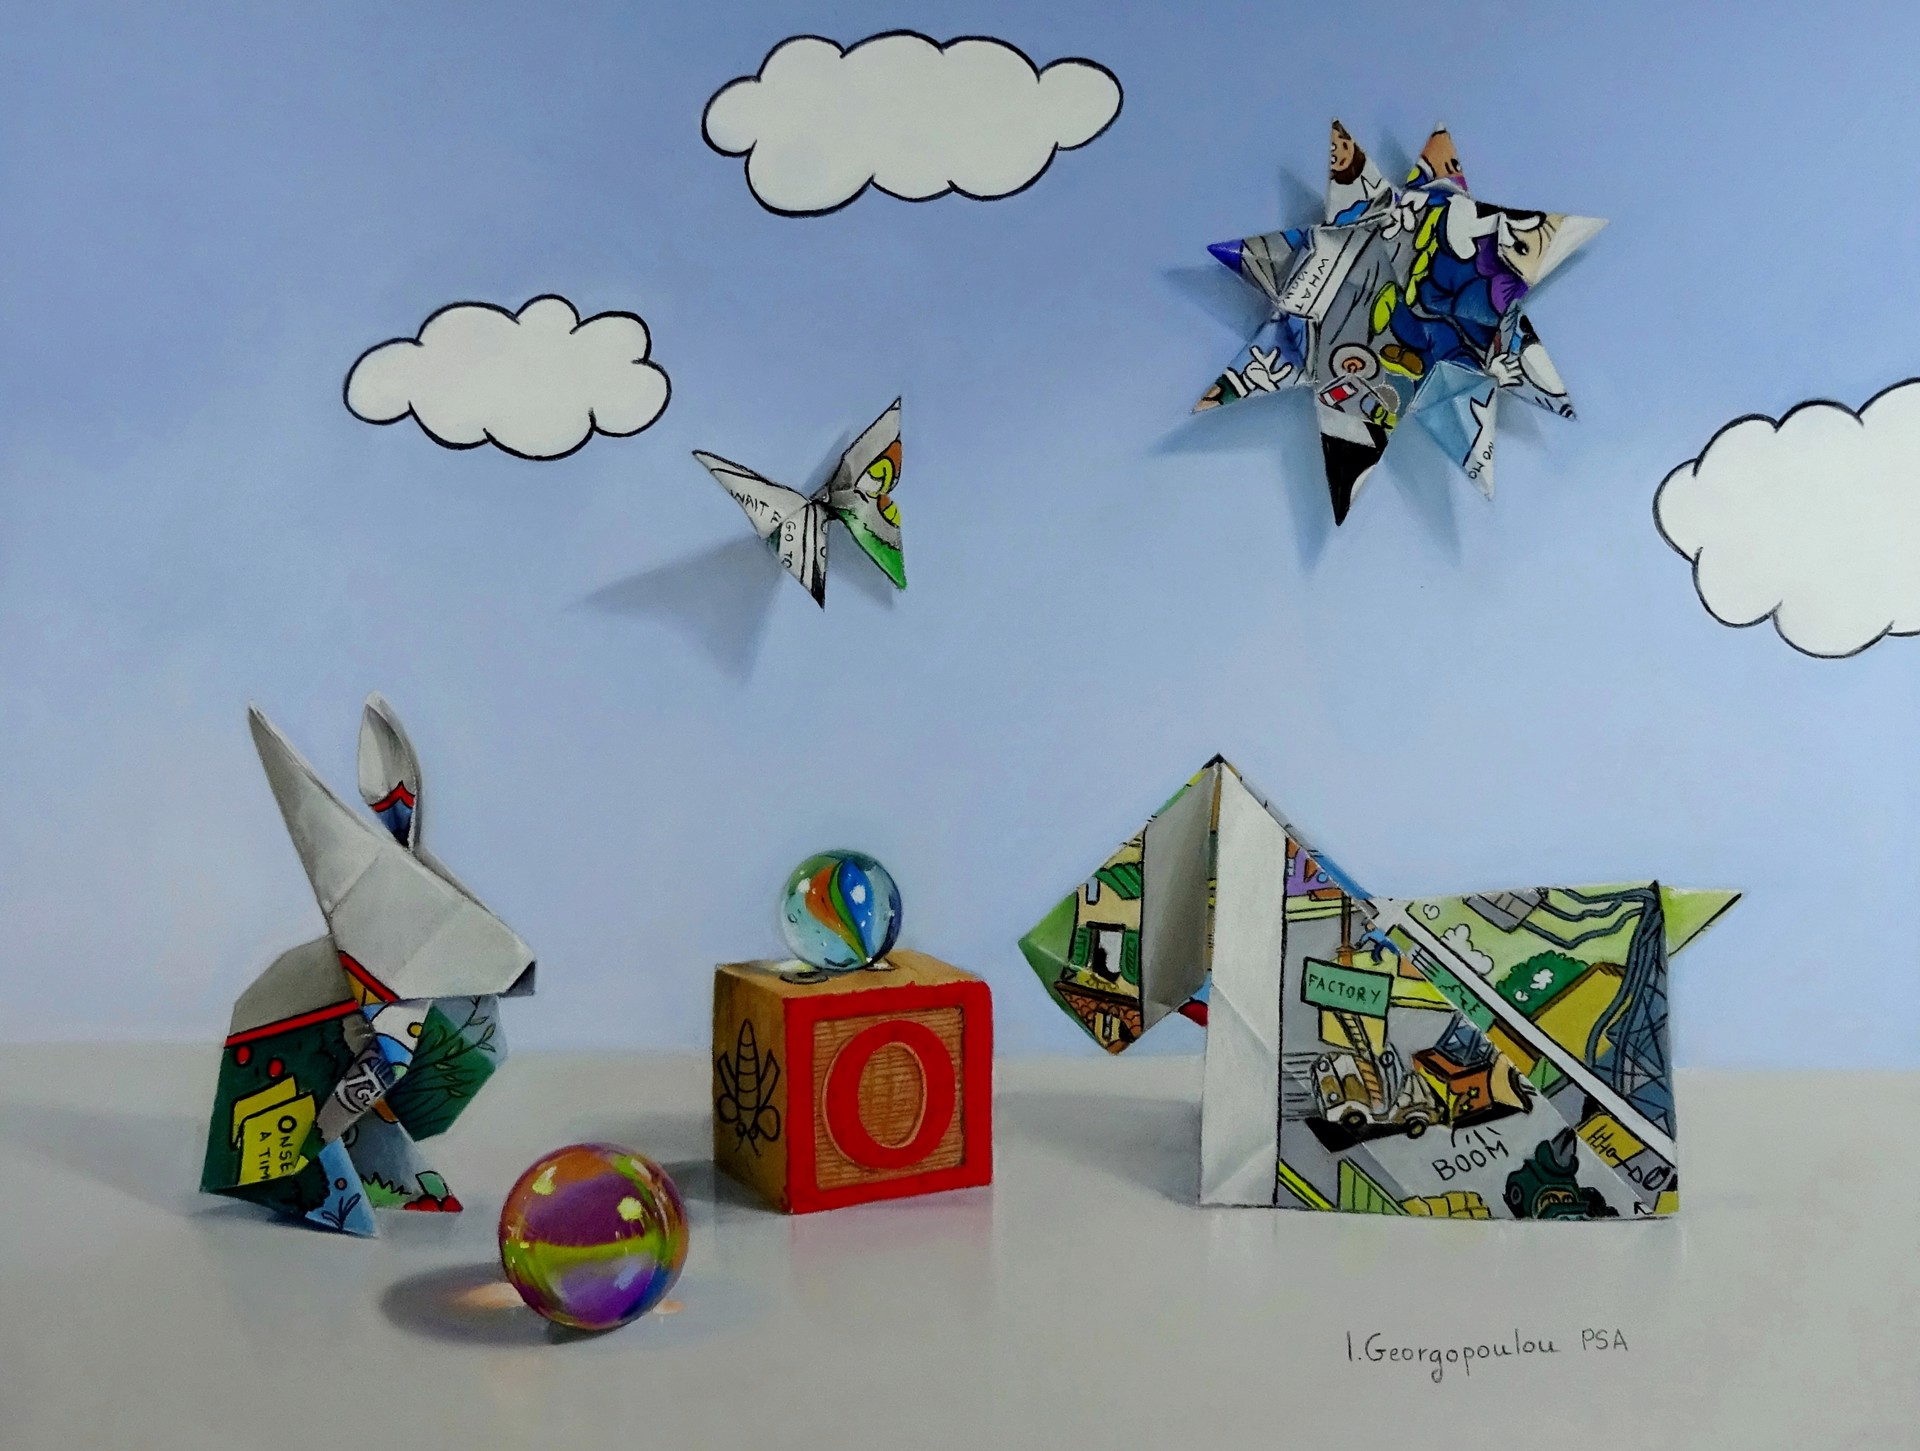 O is for Origami by Irene Georgopoulou